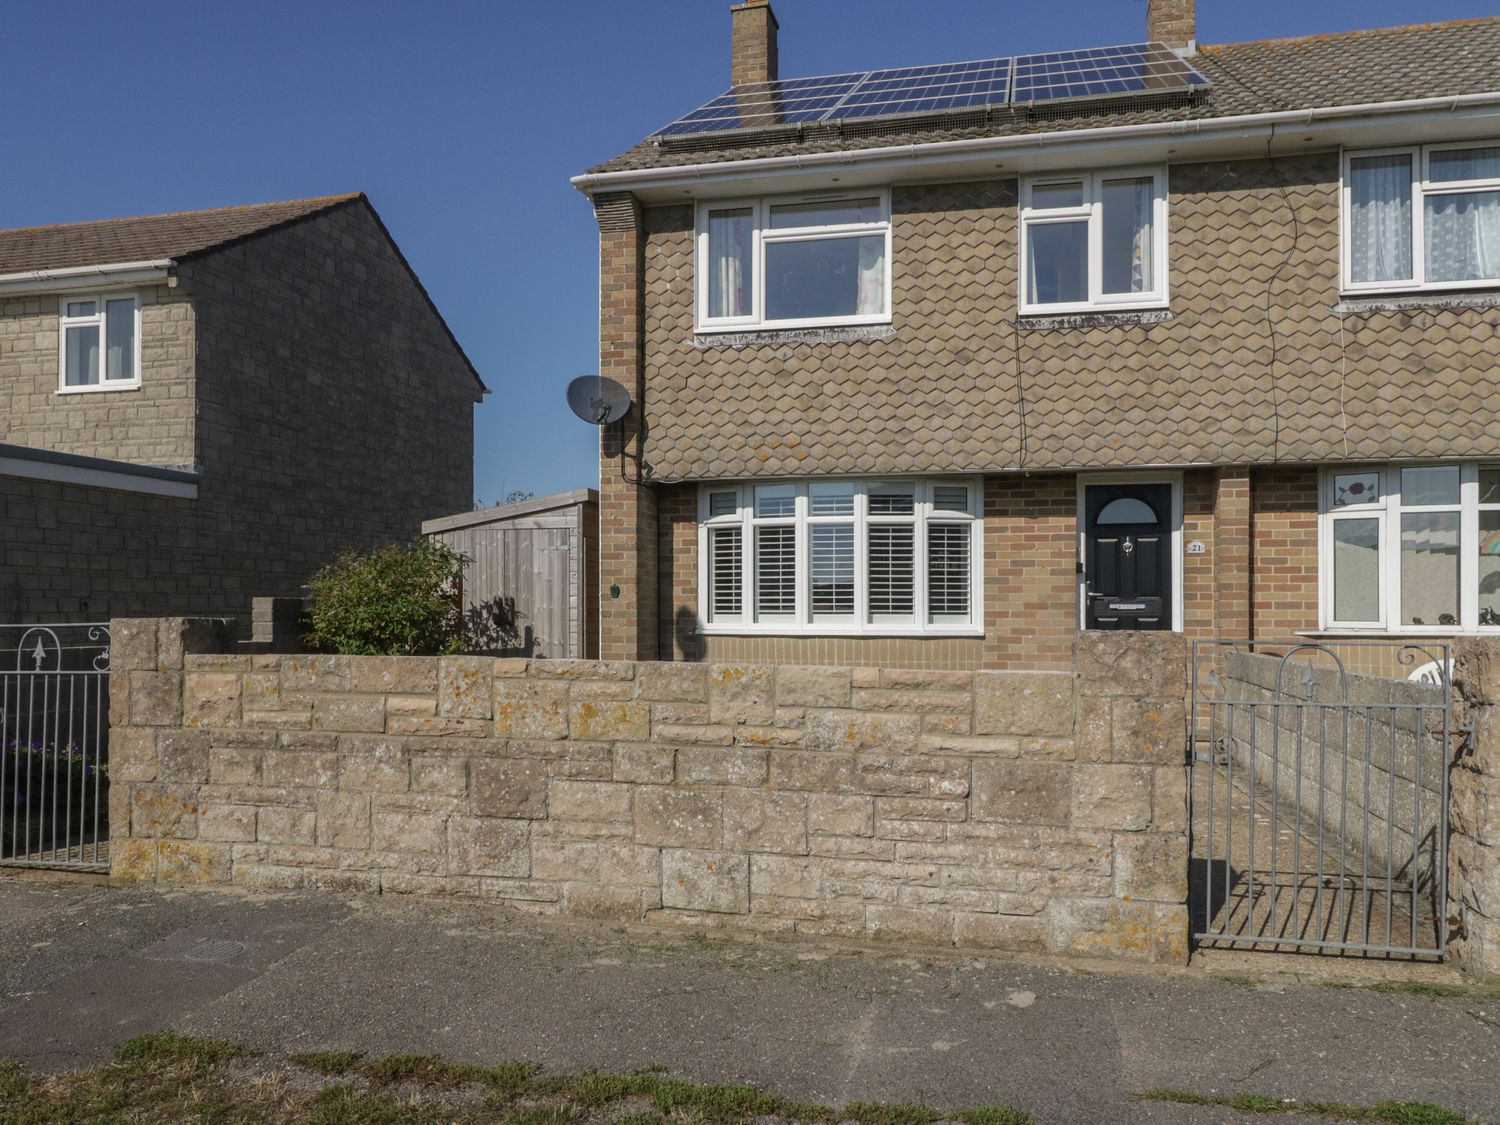 21 Court Barton - Dorset - 1055815 - photo 1